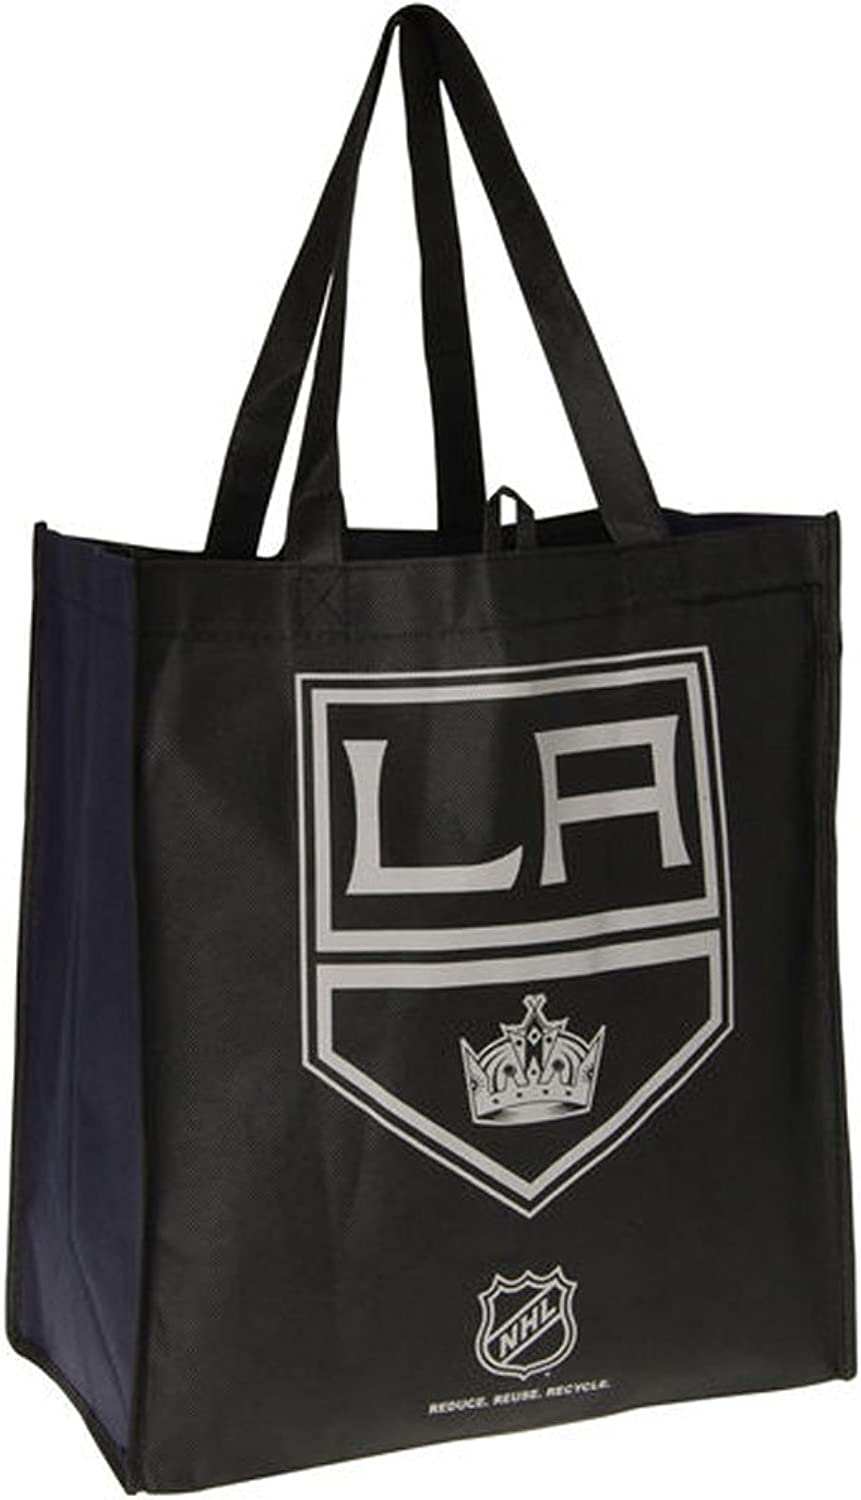 NHL Unisex Printed Reusable Grocery Tote Bag